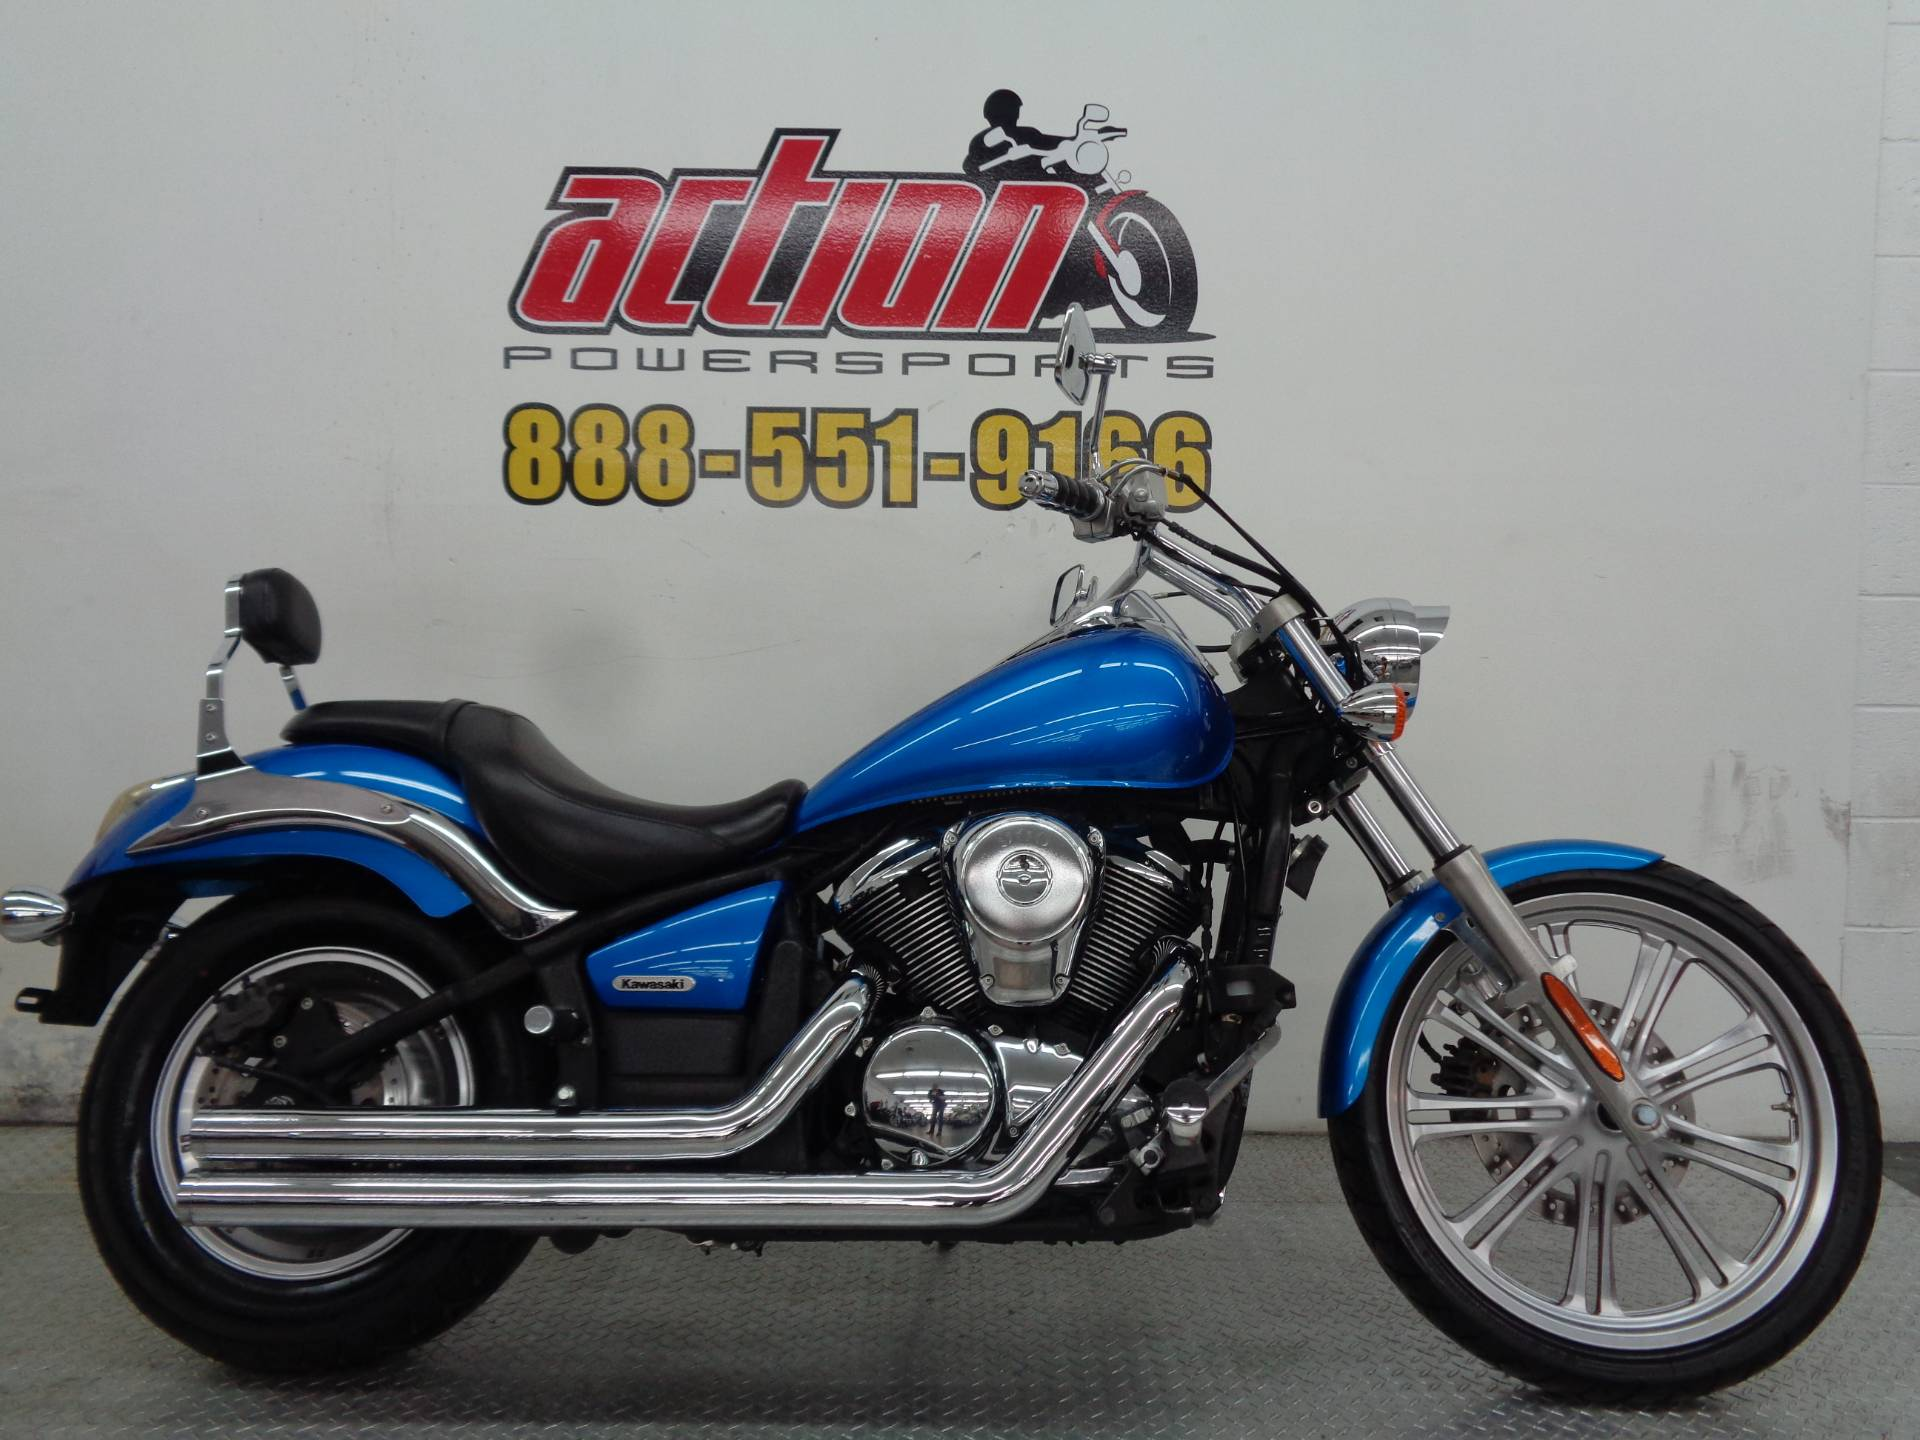 2007 Kawasaki Vulcan 900 Custom for sale 713